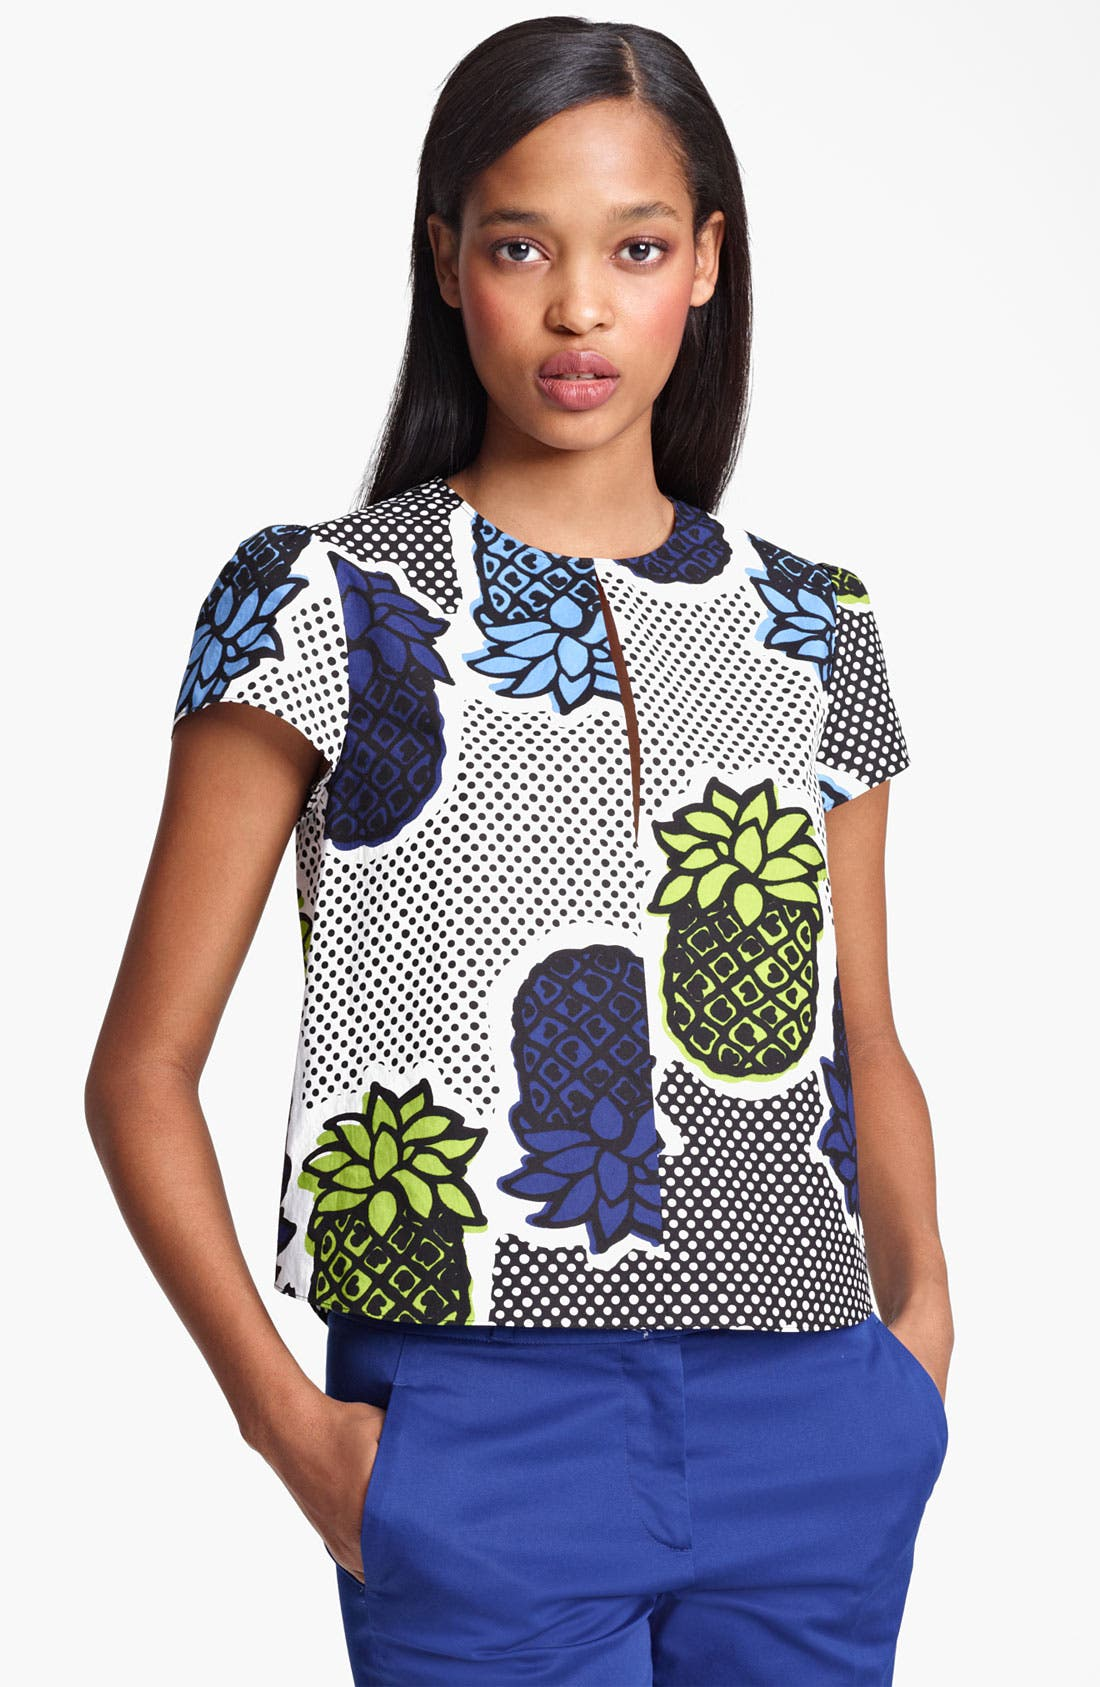 Main Image - Moschino Cheap & Chic Pineapple Print Blouse